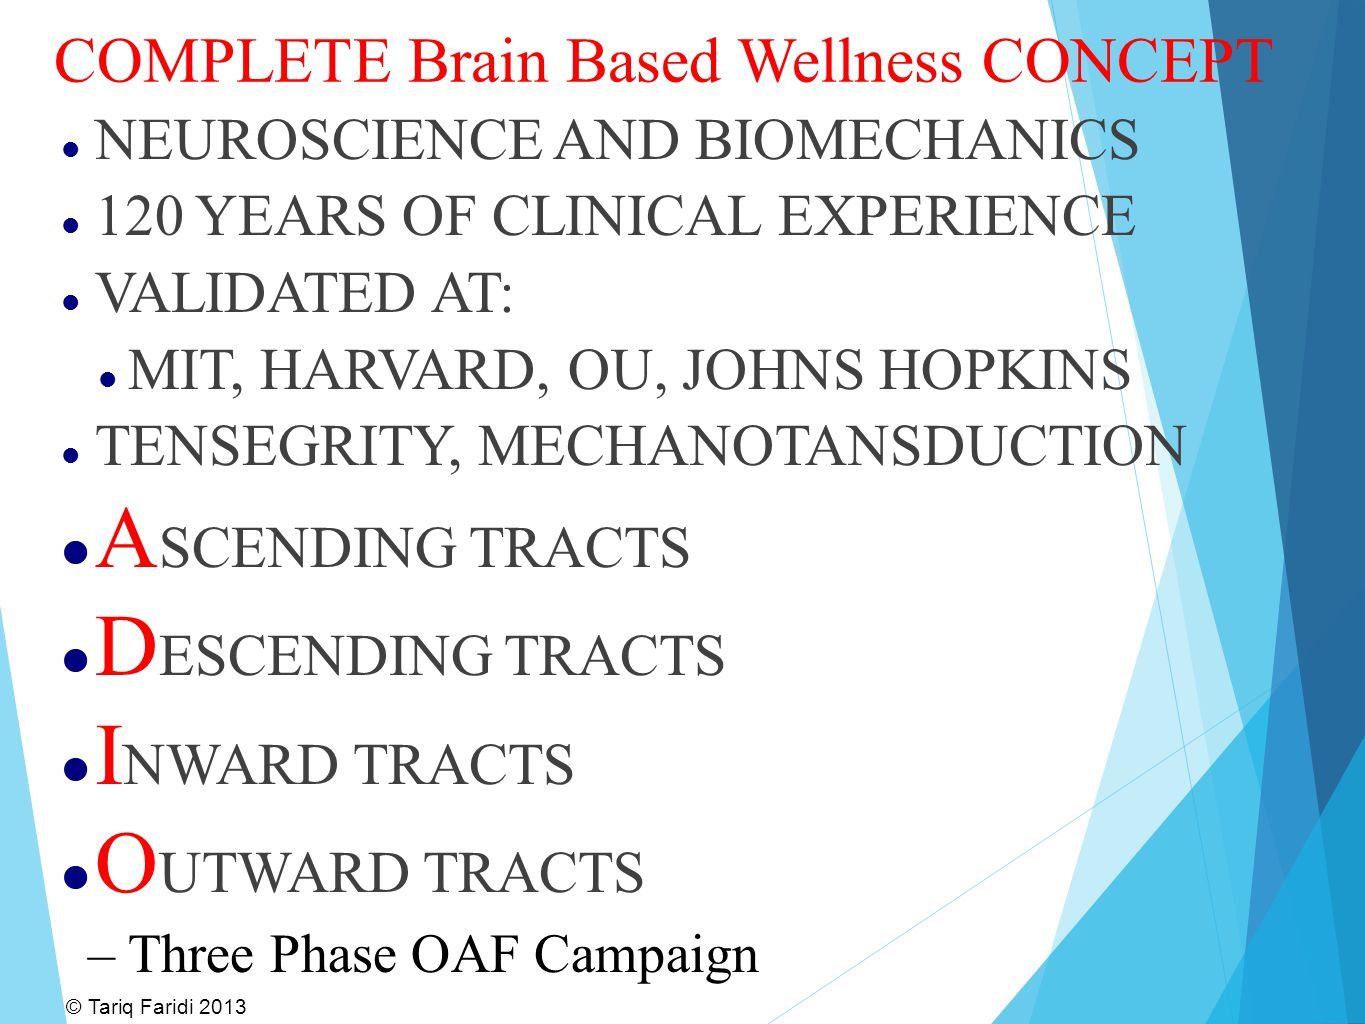 COMPLETE Brain Based Wellness CONCEPT NEUROSCIENCE AND BIOMECHANICS 120 YEARS OF CLINICAL EXPERIENCE VALIDATED AT: MIT, HARVARD, OU, JOHNS HOPKINS TEN